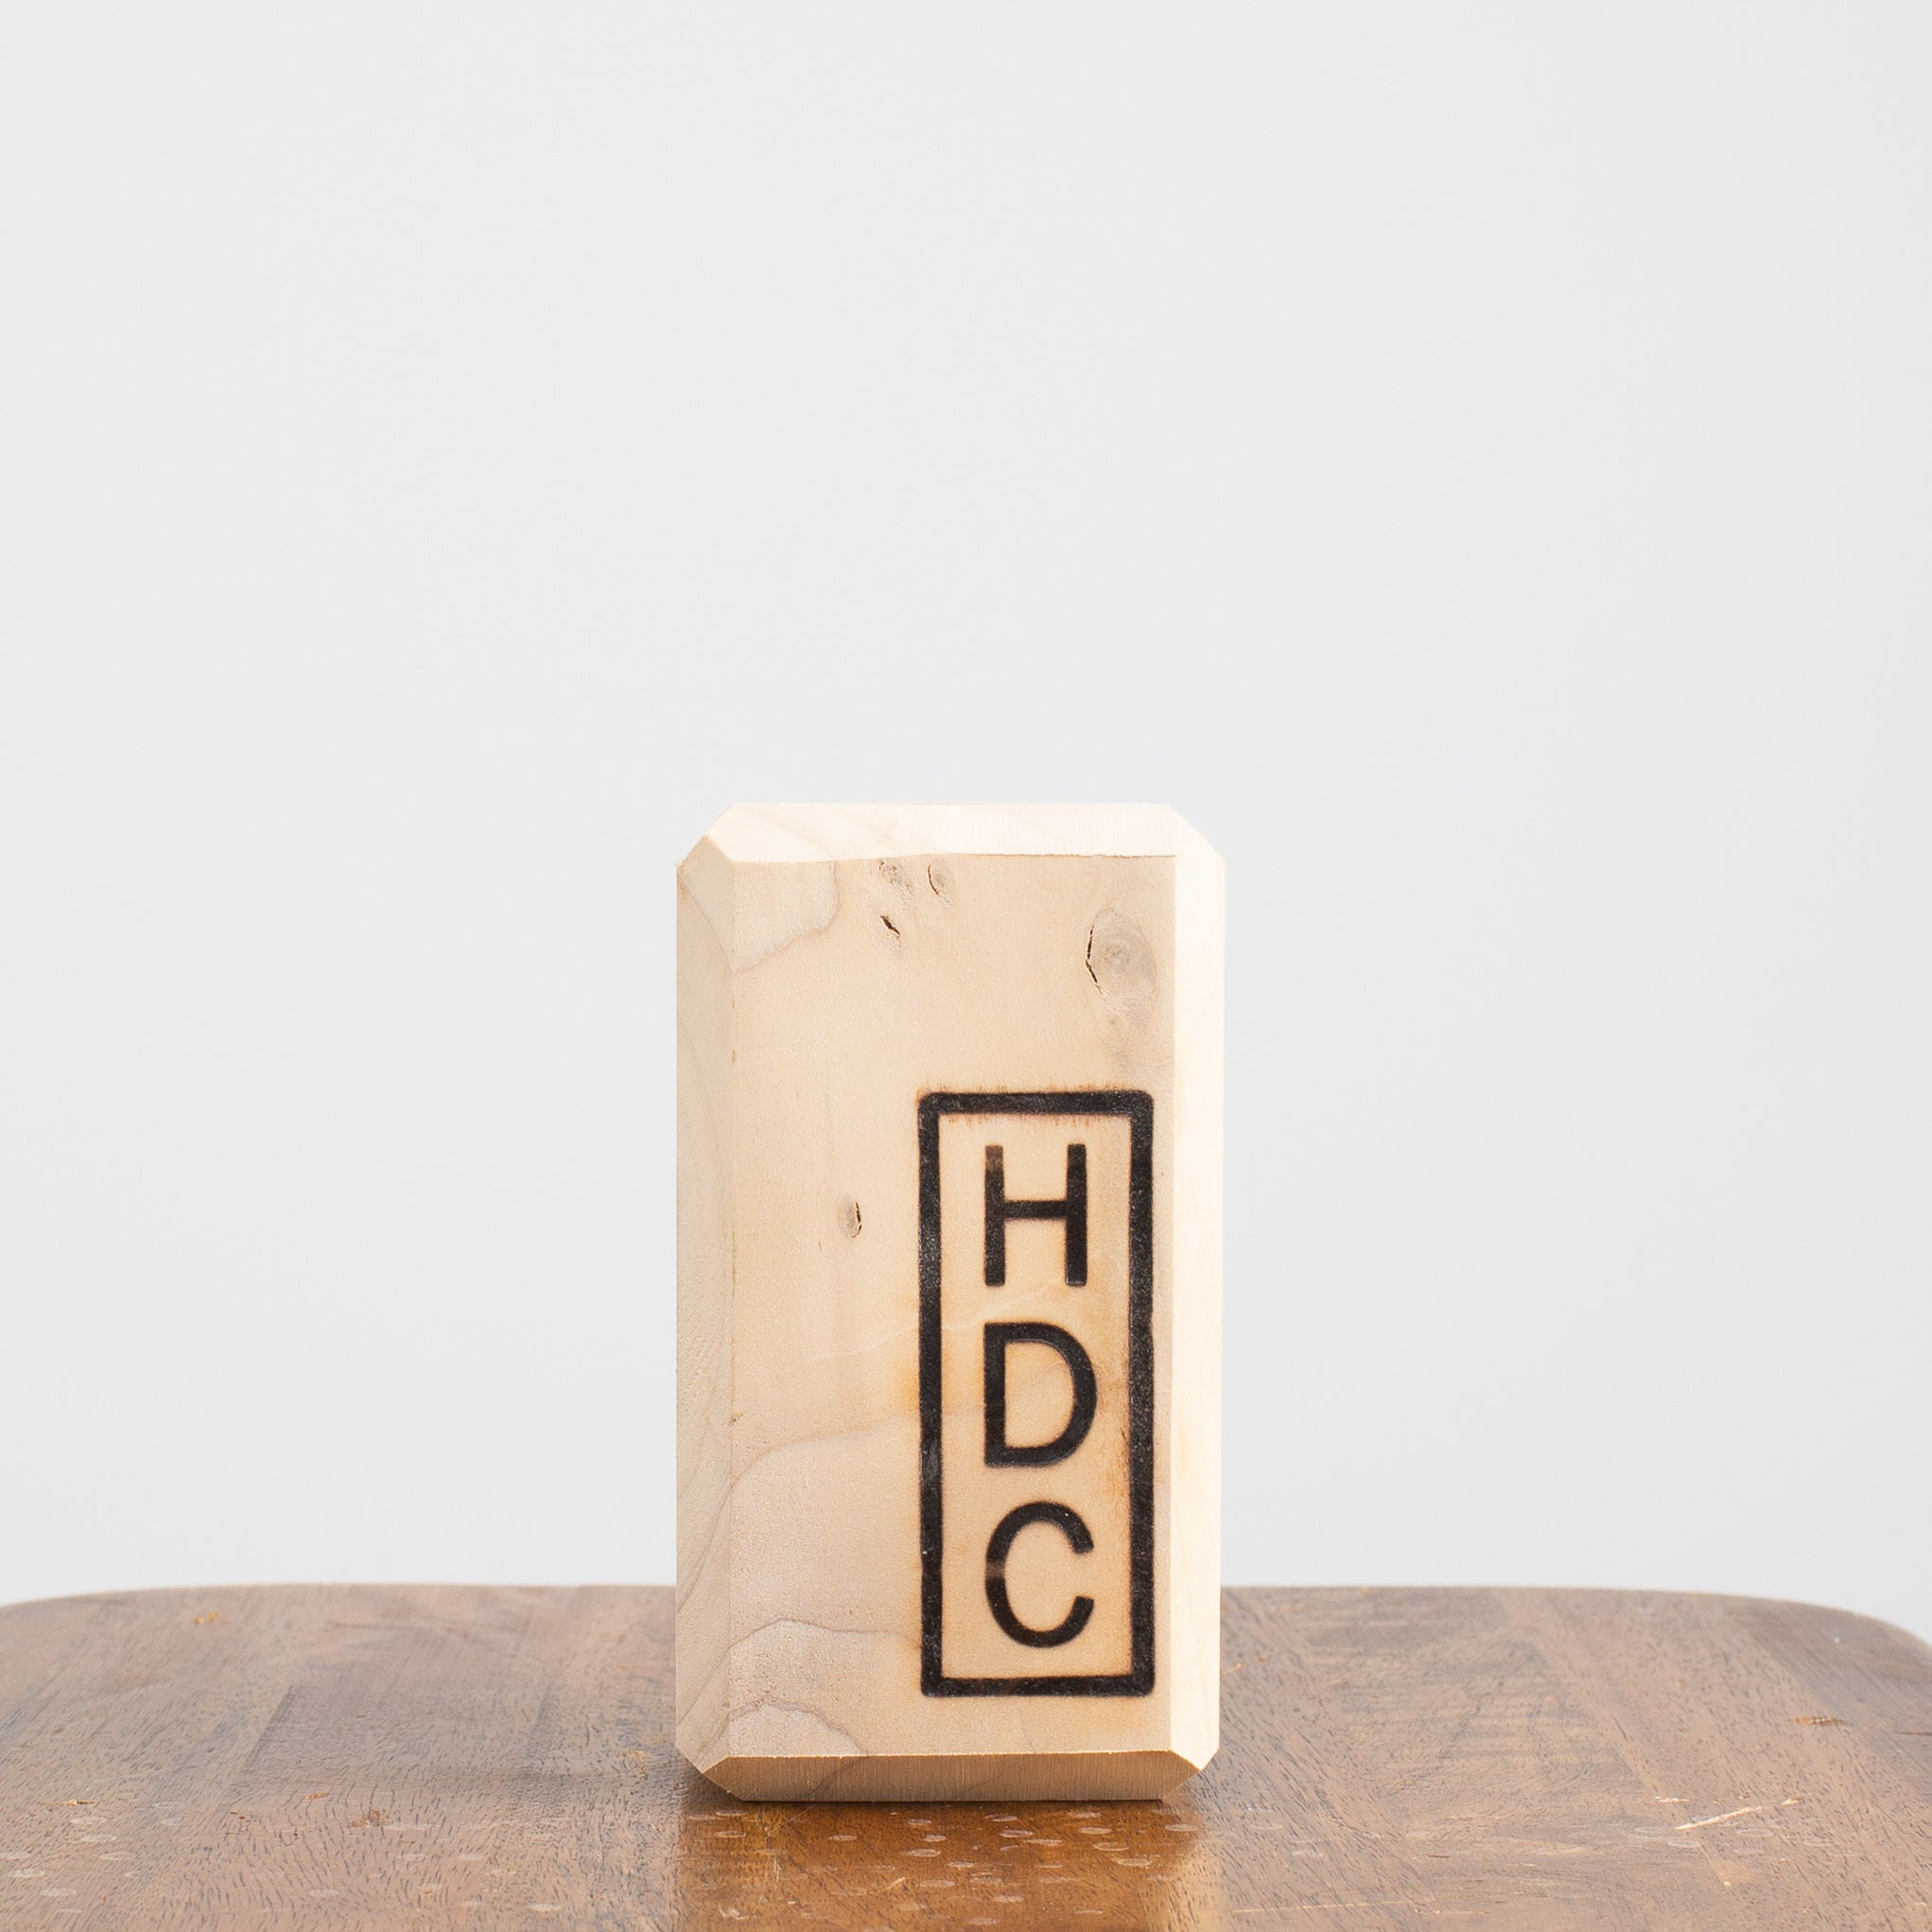 Hdc Pencil Holder Harp Design Co